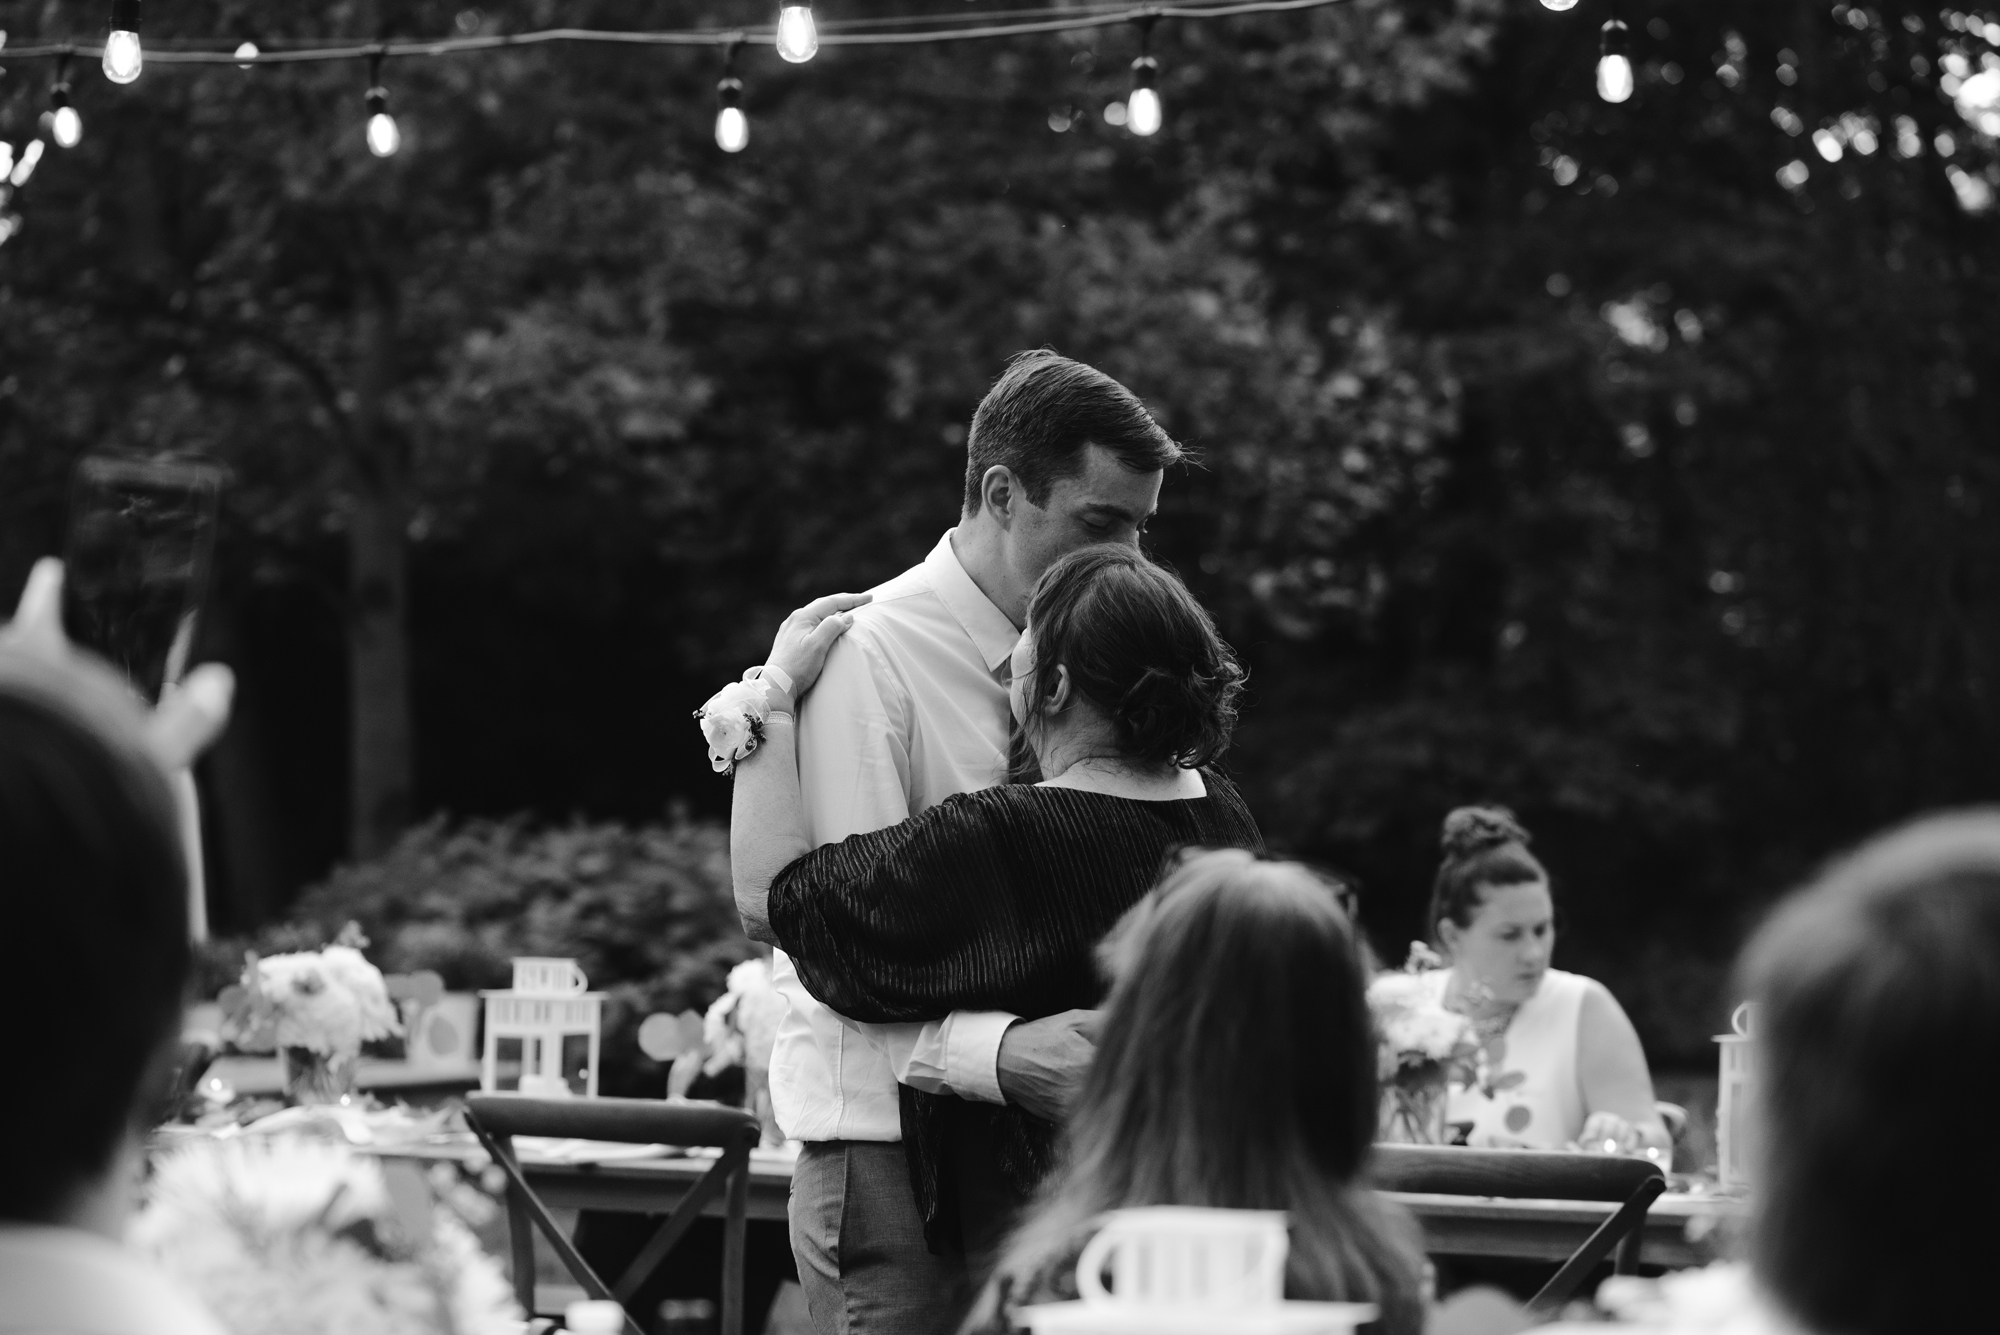 sawyer-michigan-backyard-wedding-dancing-pictures-sydney-marie (7).jpg